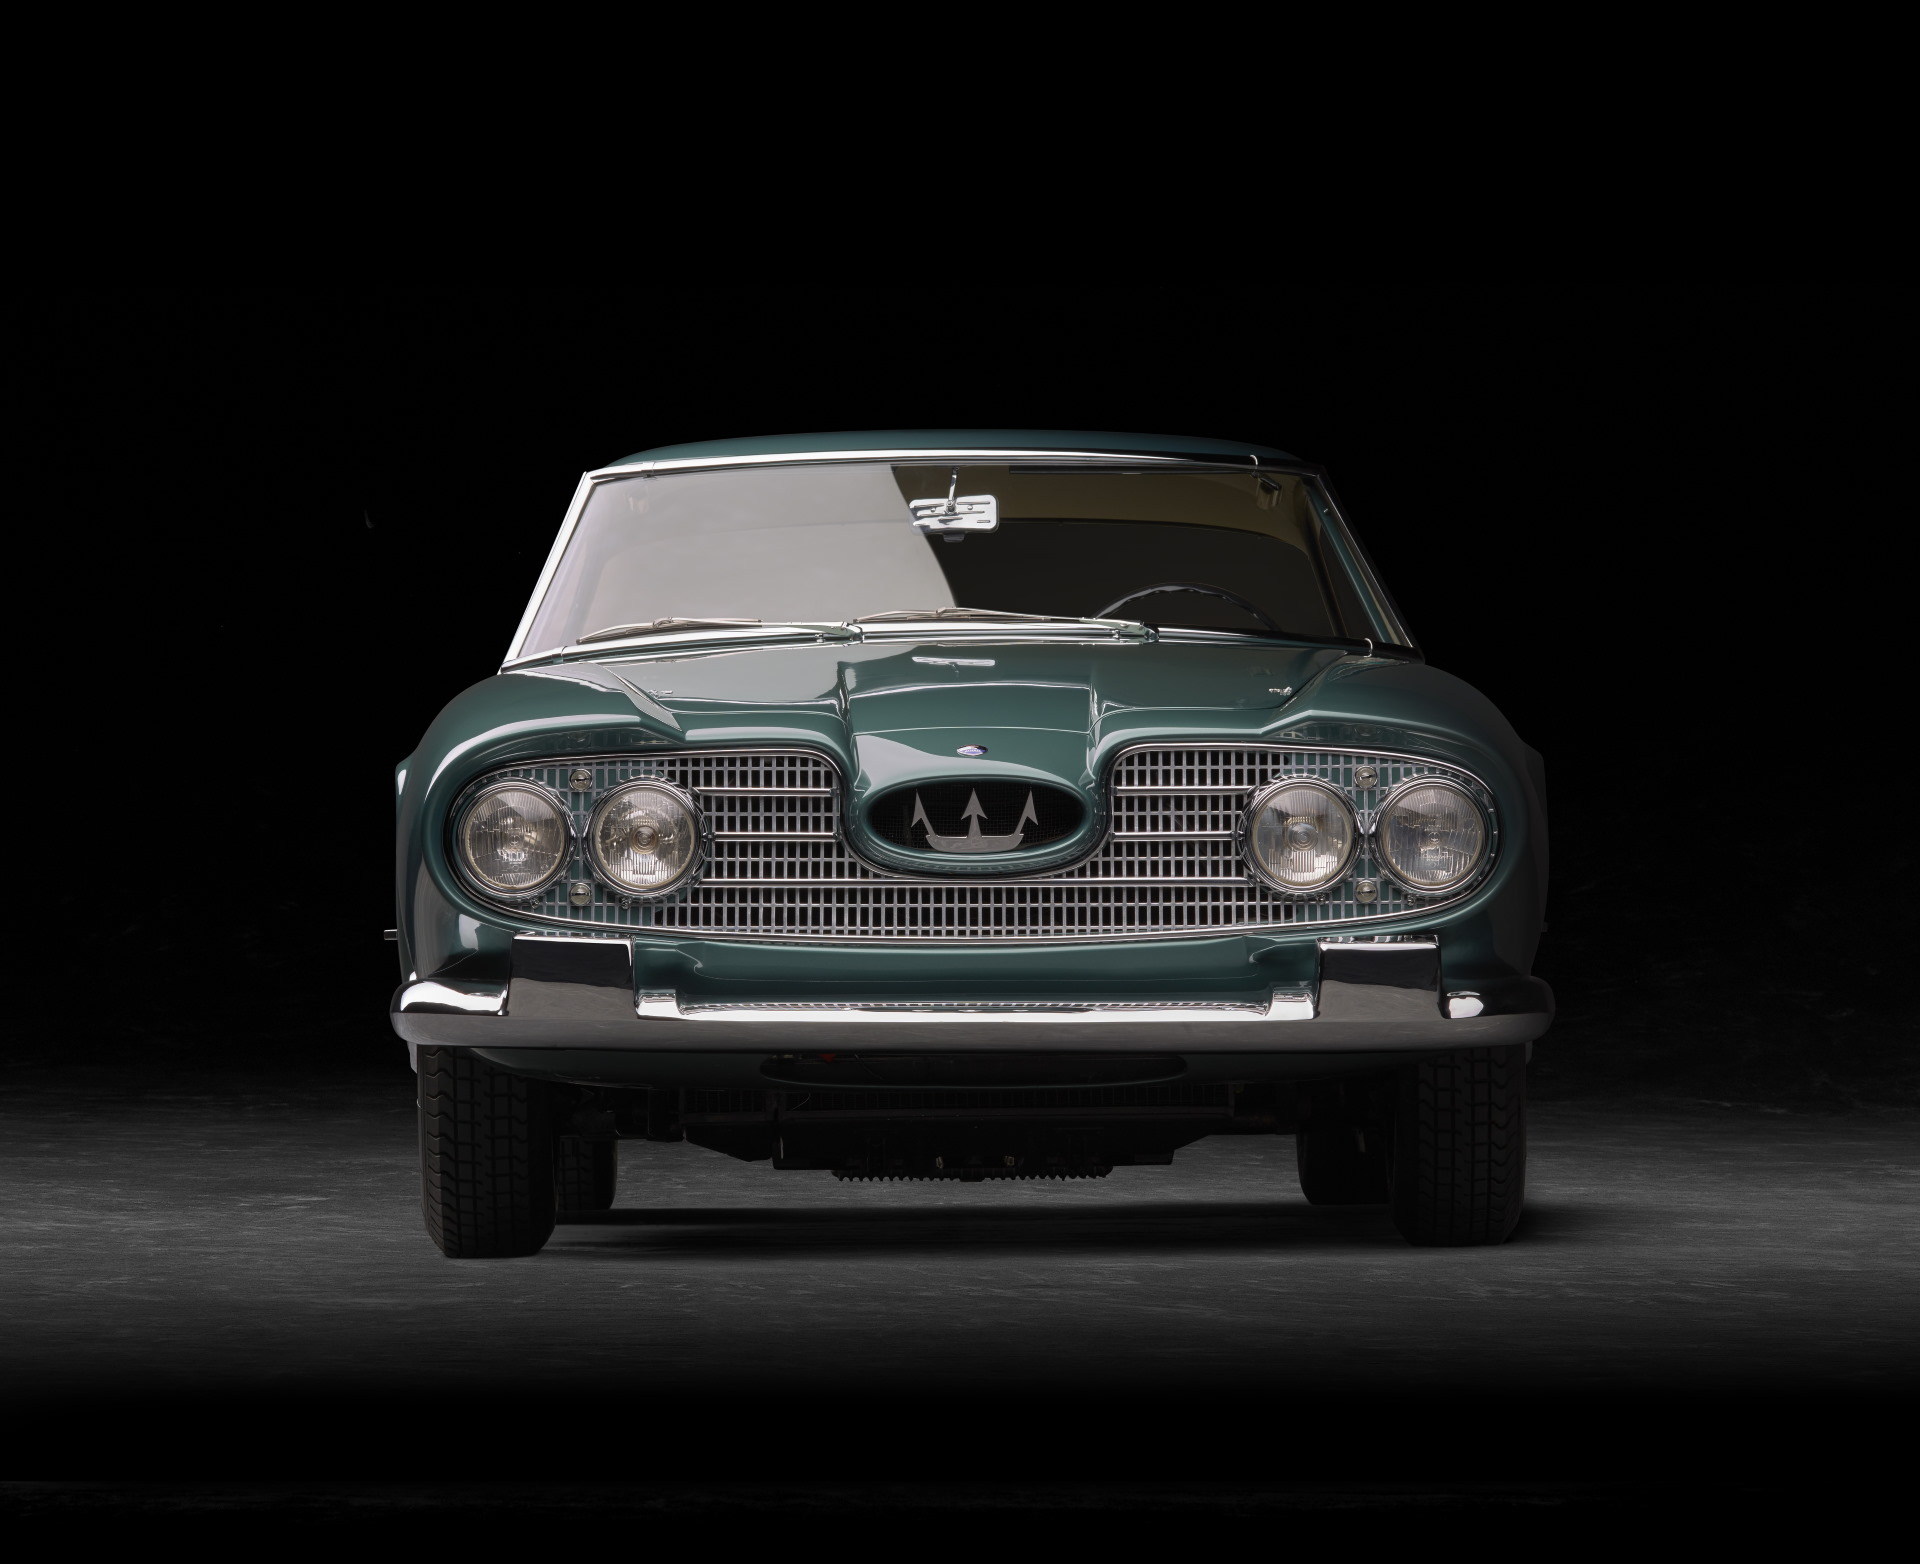 60th anniversary of the Maserati 5000 GT model - 5000 GT coupé front view